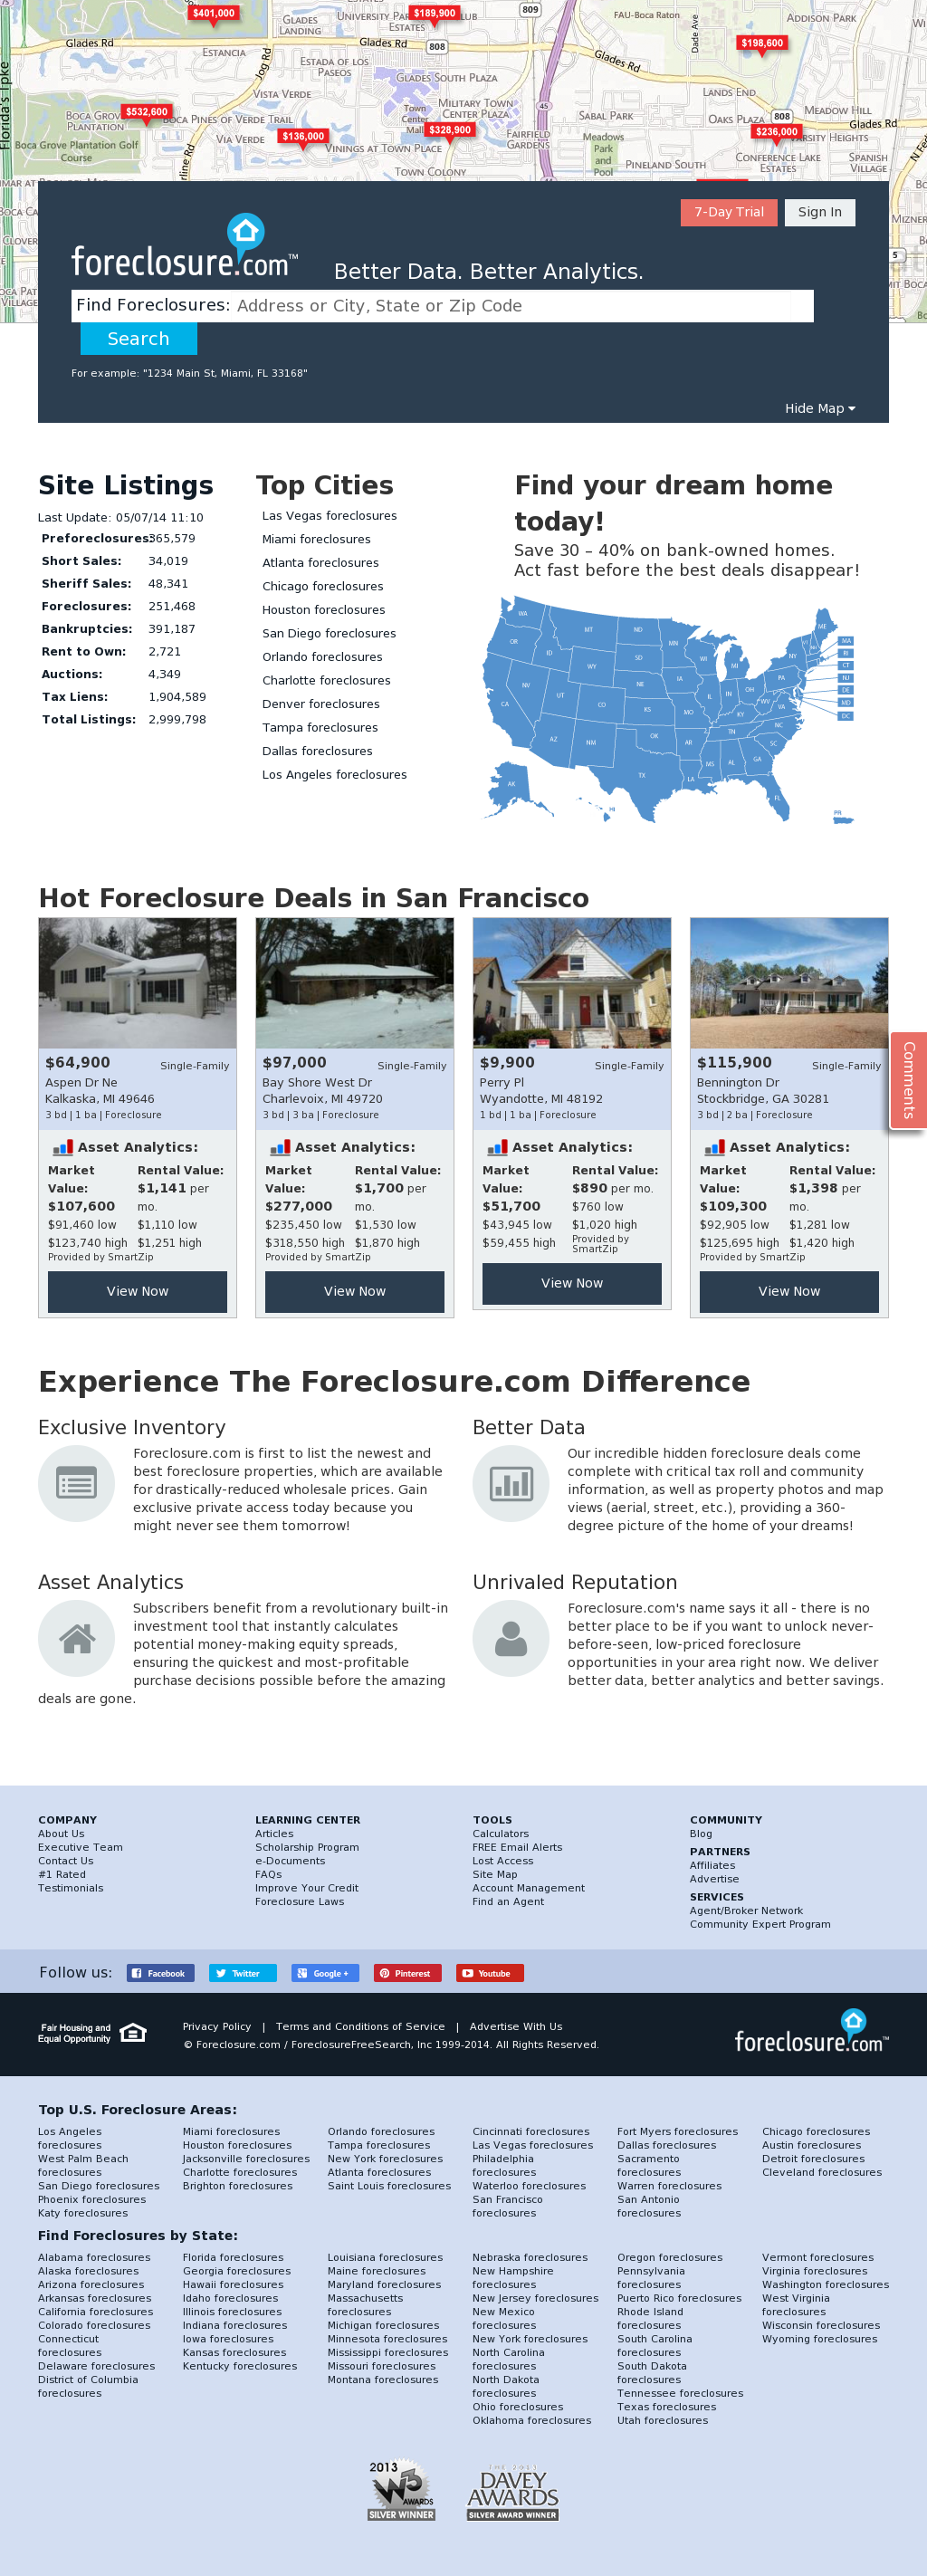 Foreclosure com Competitors, Revenue and Employees - Owler